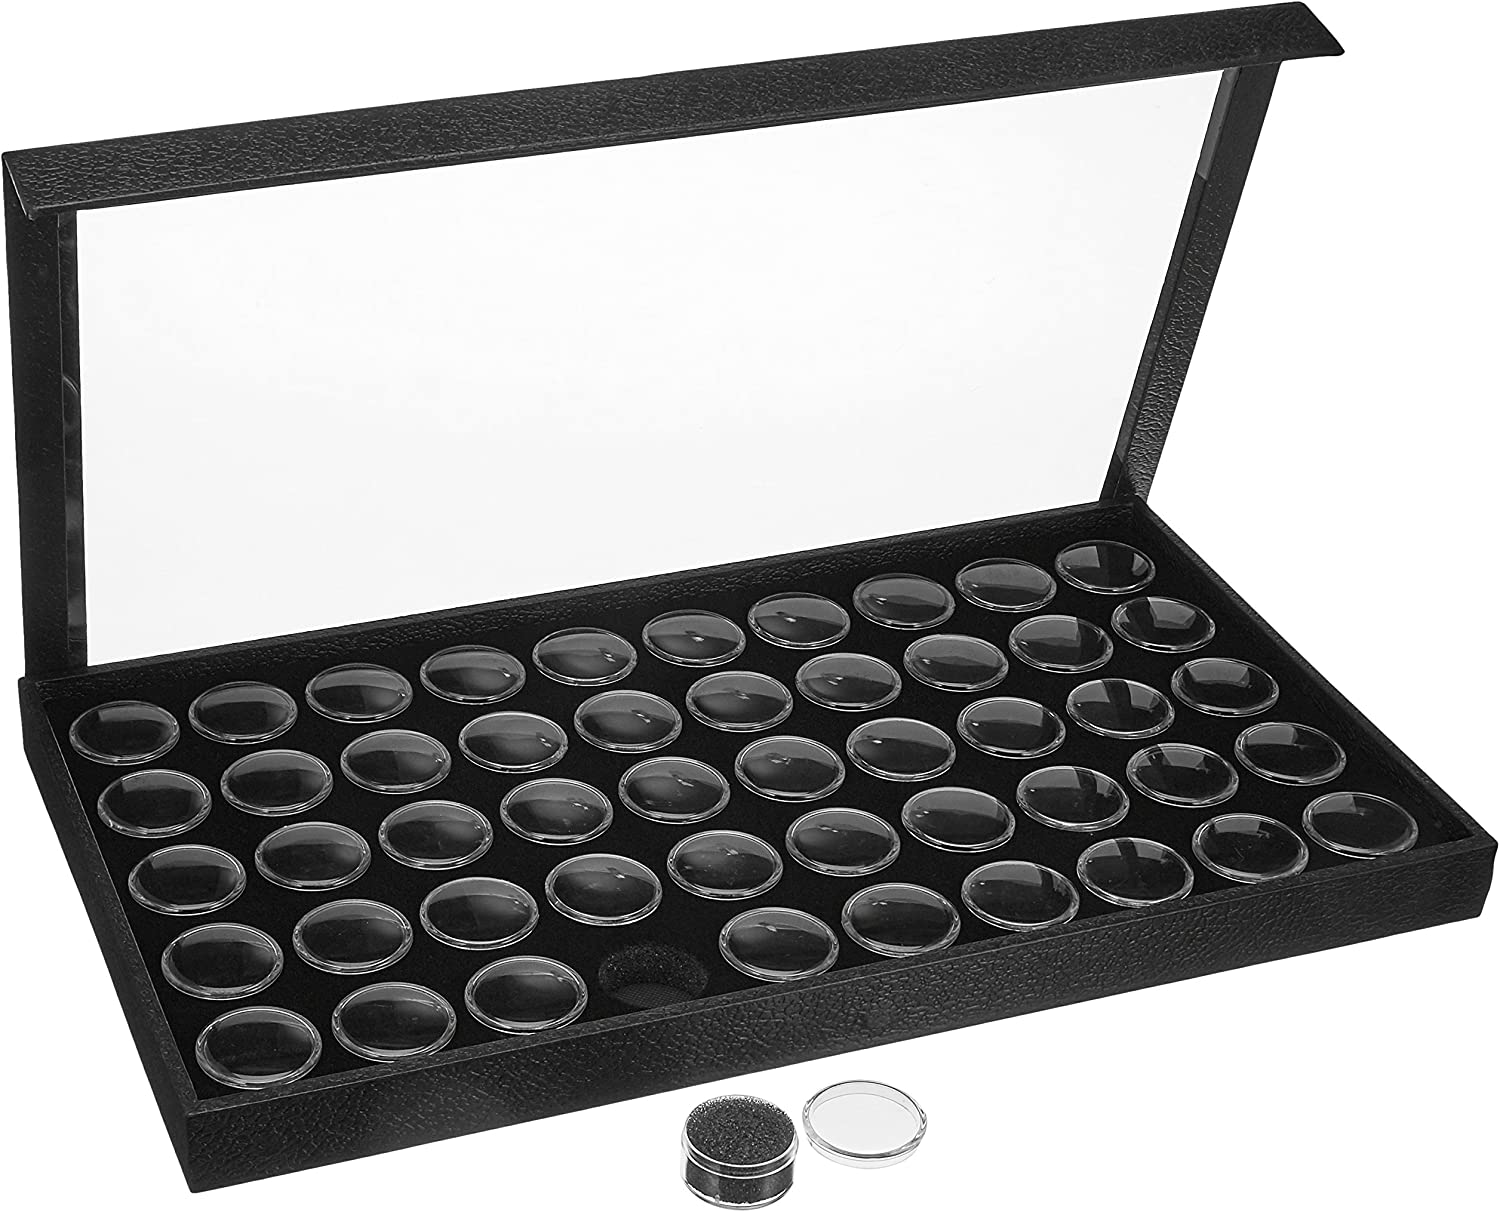 50 Black Gem /& Coin Jars Stackable Display Travel Tray by N//A